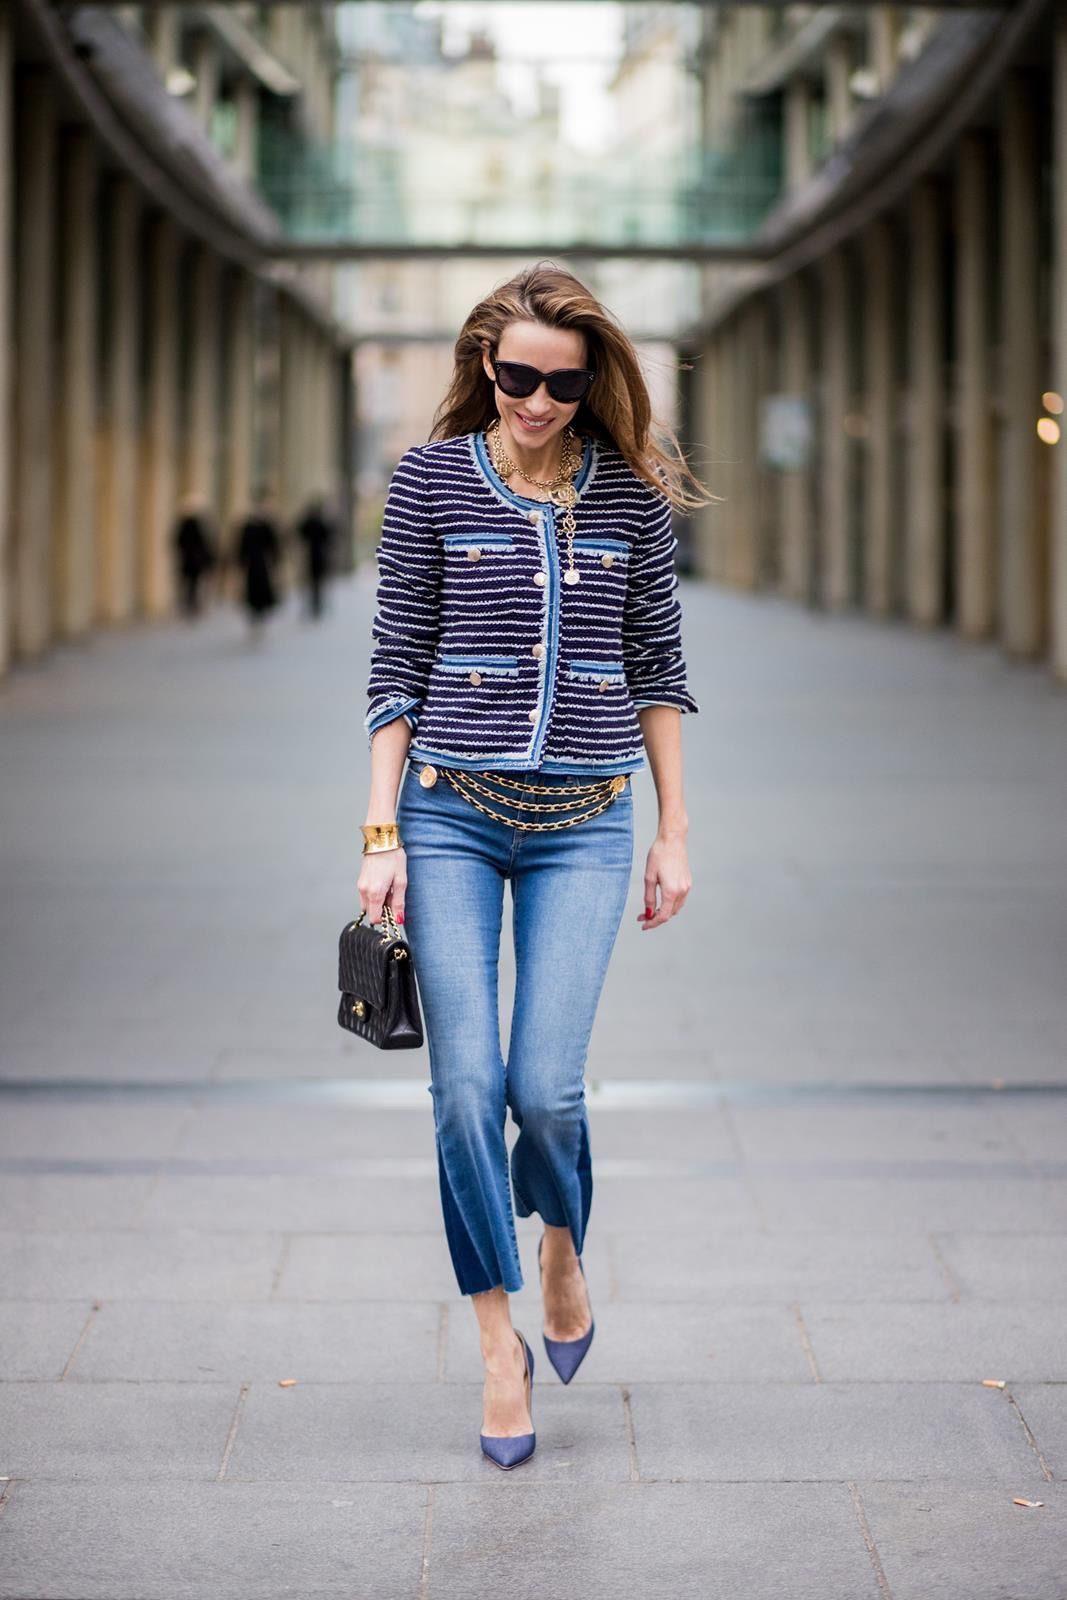 553bdac65291 Alexandra Lapp wearing Chanel Vintage  striped tweed jacket in marine tones  and flared jeans from